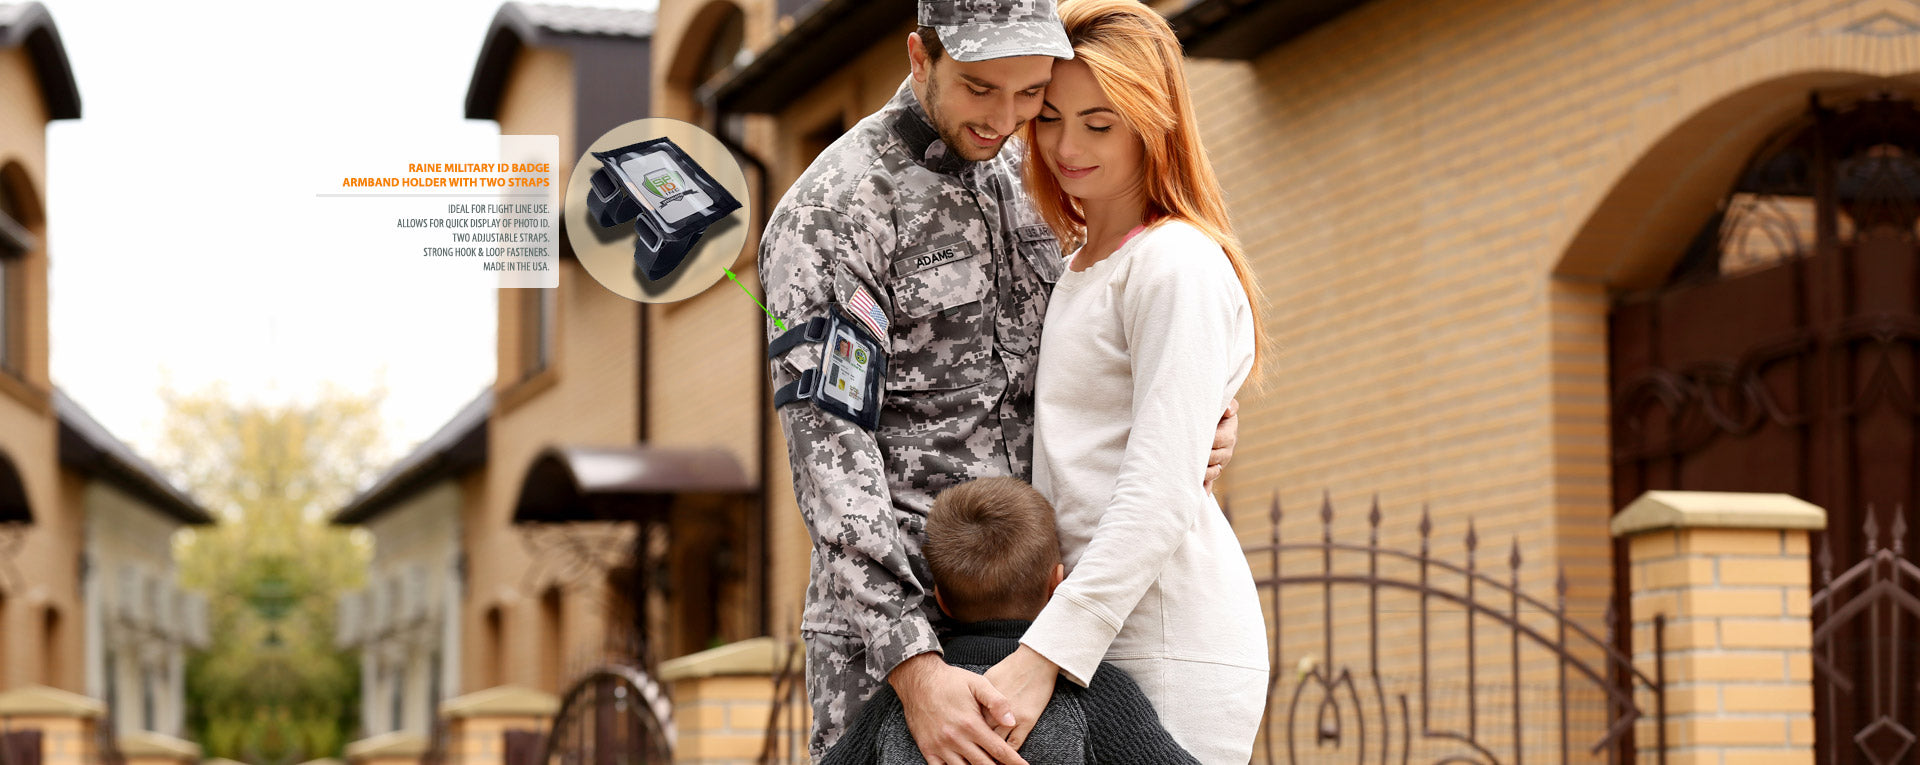 Soldier reuniting with family showing armband ID badge holder, click to view armband badge holders.